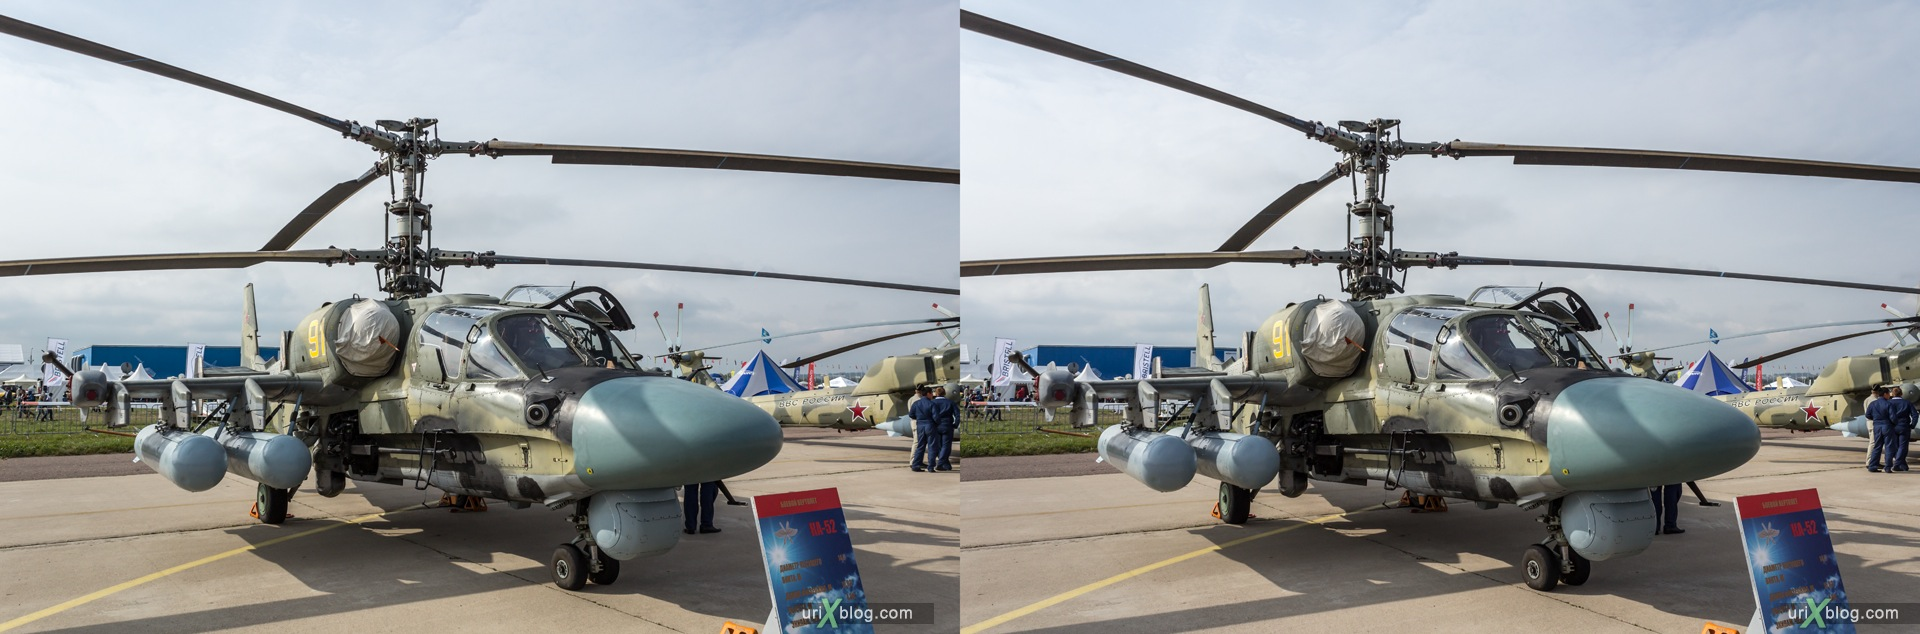 2013, MAKS, International Aviation and Space Salon, Russia, Ramenskoye airfield, Ка-52, helicopter, 3D, stereo pair, cross-eyed, crossview, cross view stereo pair, stereoscopic